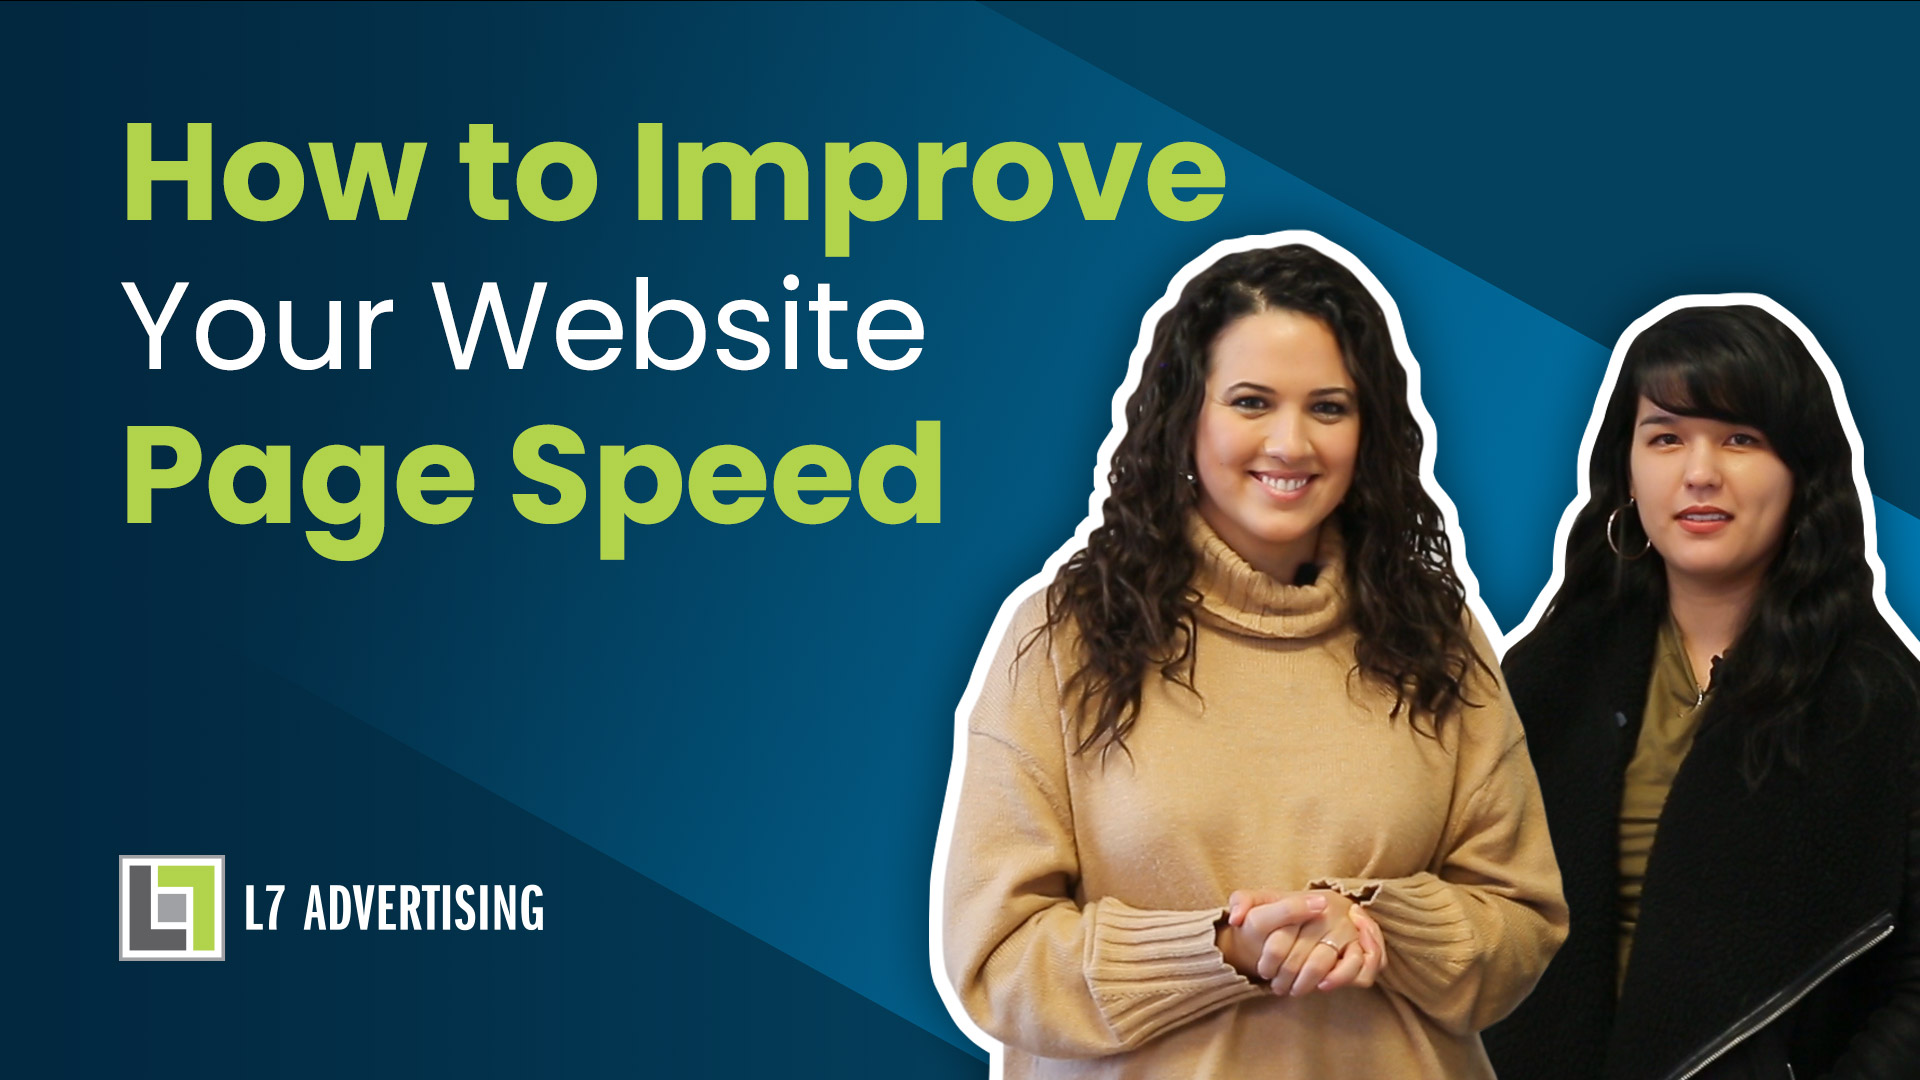 Cover photo for how to improve your website page speed load time youtube video